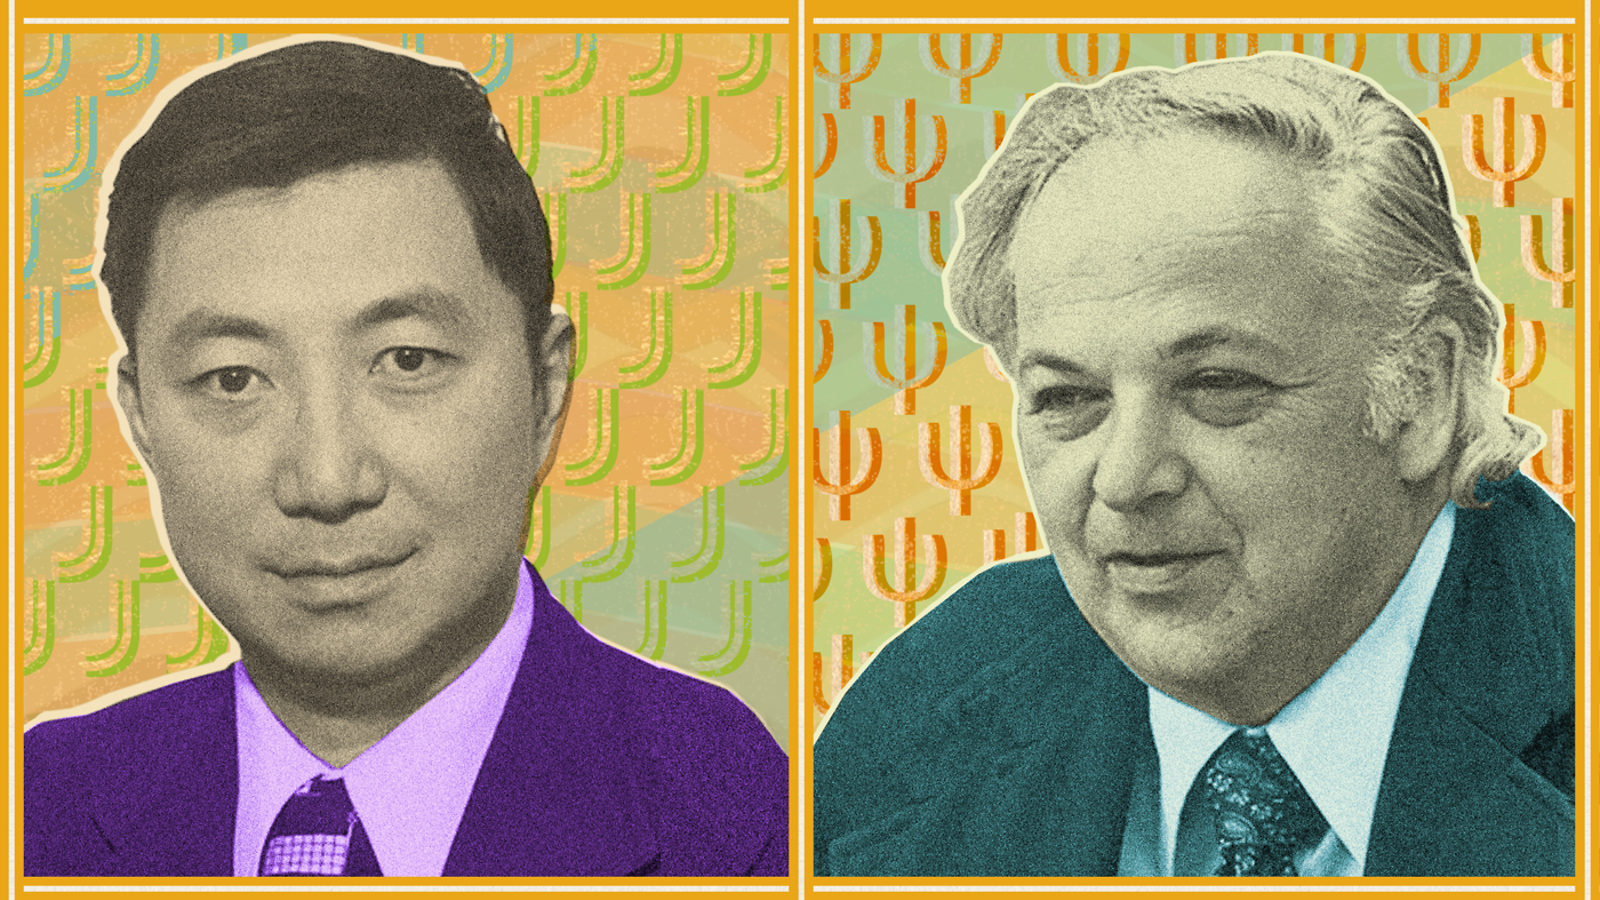 Collage illustration of Sam Ting and Burton Richter